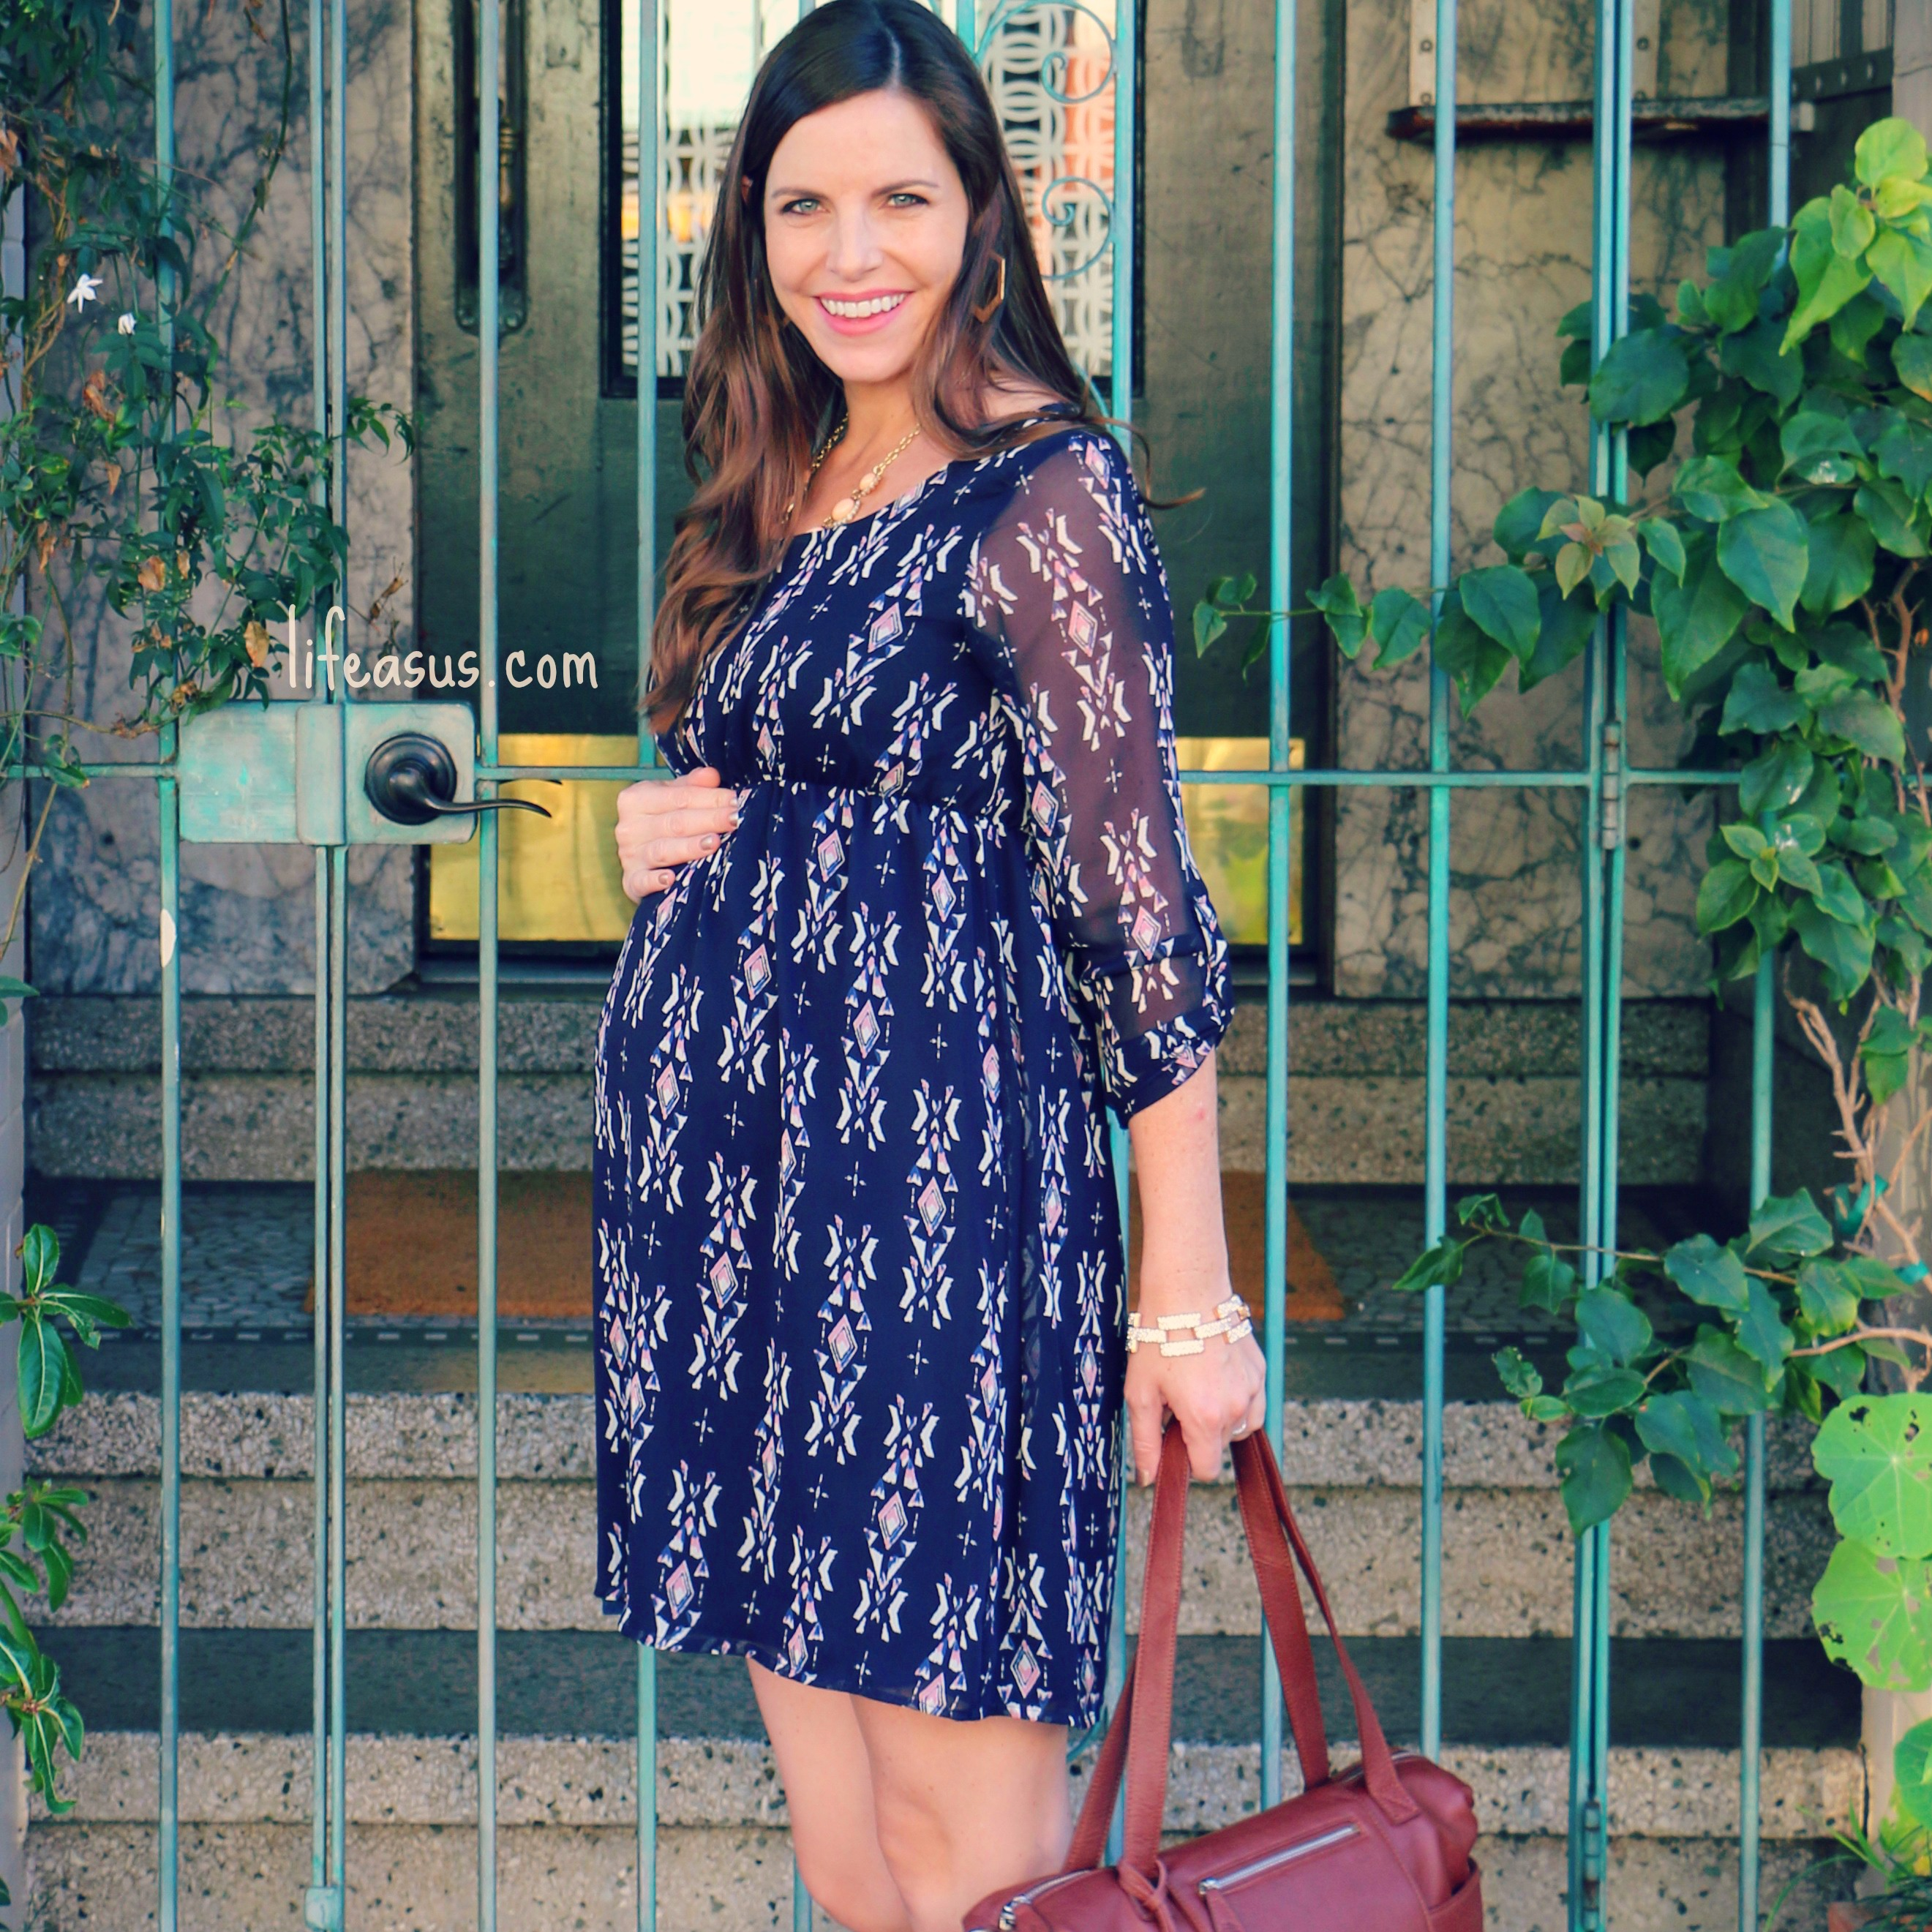 16070a96502 Maternity Fashion Advice   Giveaway from lifeasus.com!    PinkBlush  Maternity  lifeasus. Grab yourself a cute dress ...